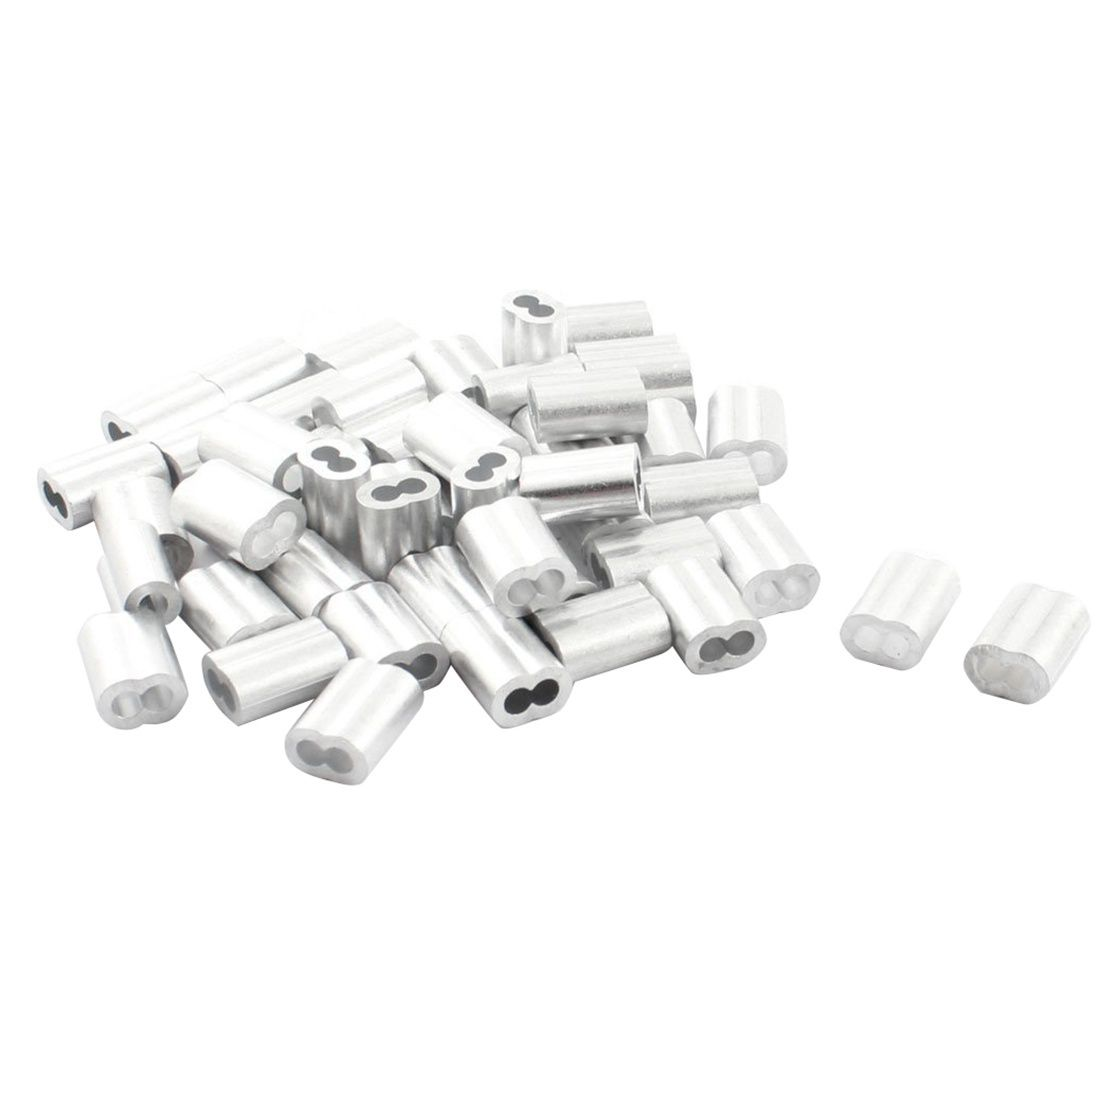 100pcs wire rope aluminum cable crimps sleeves clip fittings loop sleeve ferrule stop wire rope